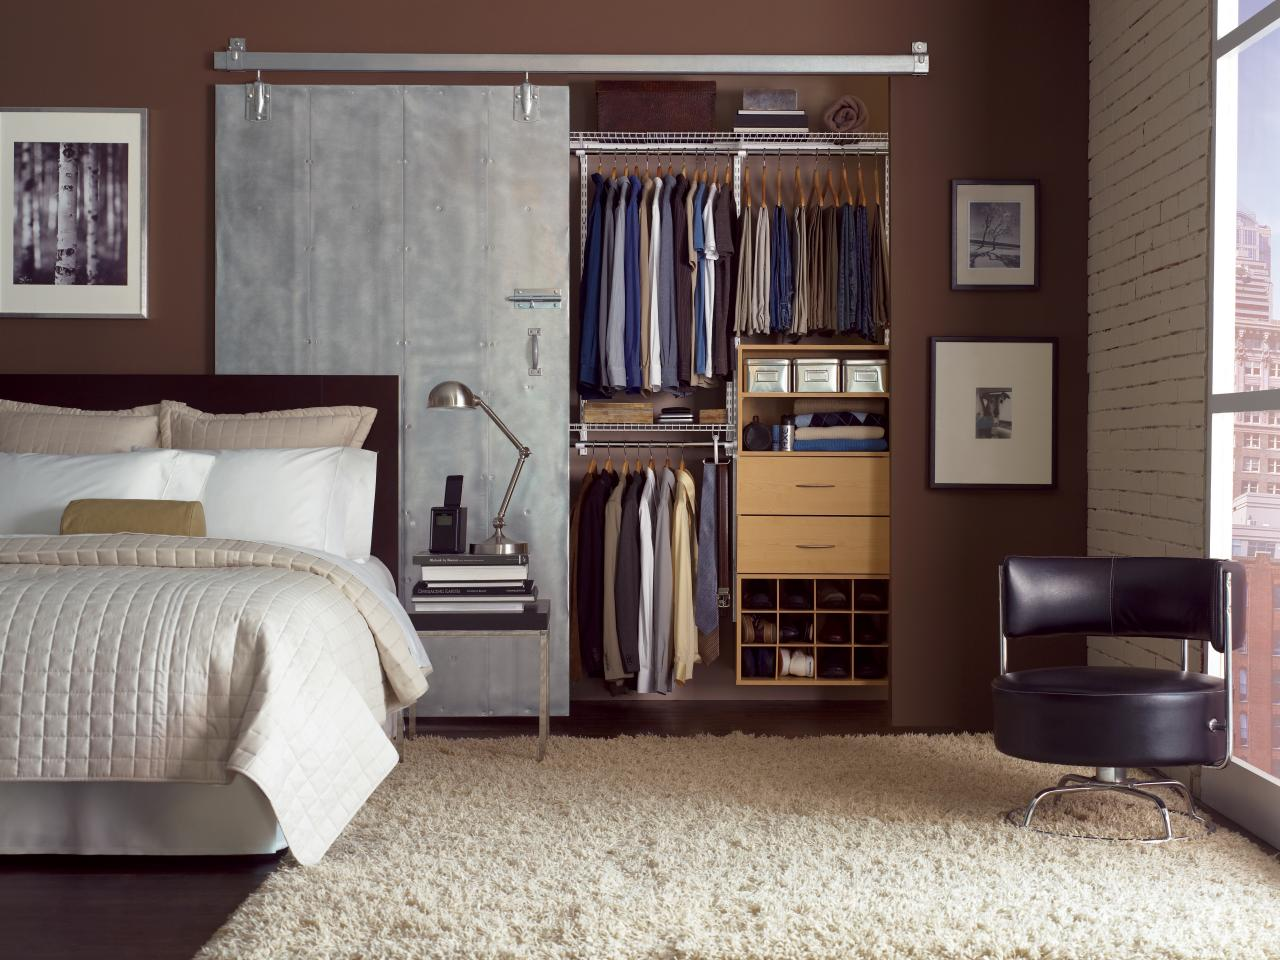 Loft Closet Ideas Small Closet Organization Ideas Pictures Options & Tips  Hgtv